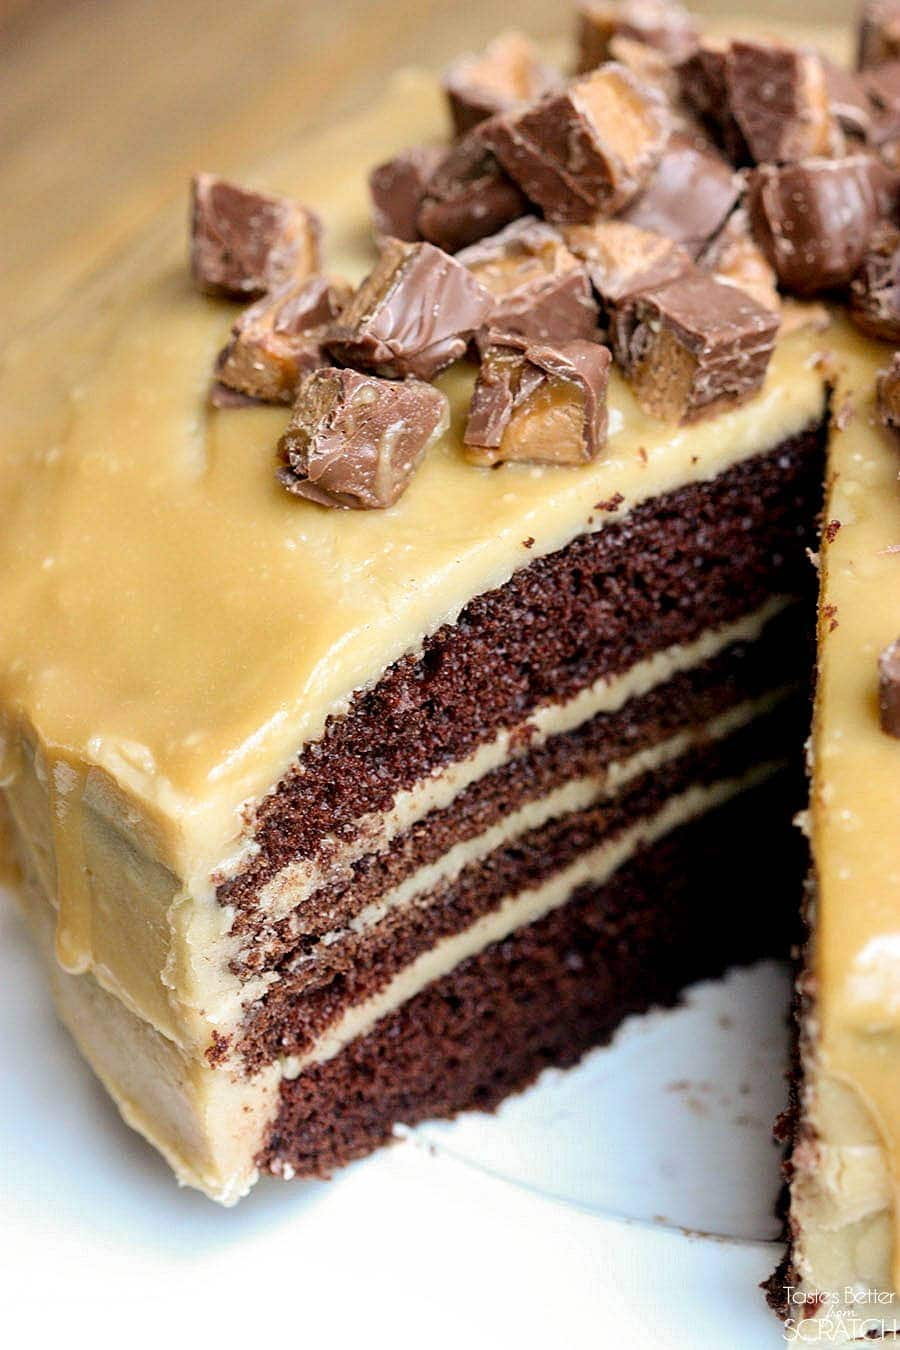 Homemade Chocolate Cake with Caramel Frosting - YUM! Layers of moist chocolatey cake with homemade caramel in between each layer with more poured over it and topped with milky way bites!